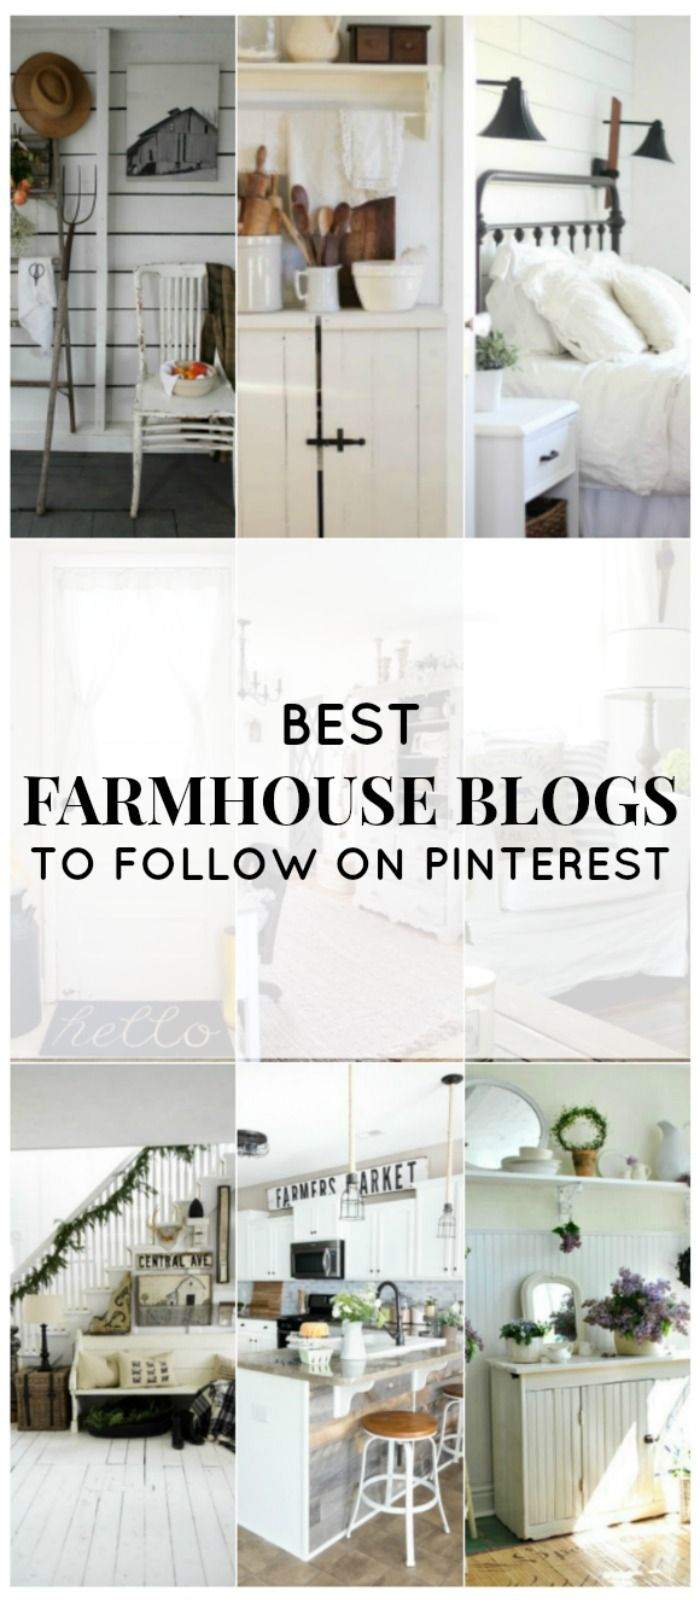 It should be no surprise that I adore farmhouse blogs. I have one of my own, and I follow many others that I love and admire. Today I thought I'd share some of my favorite farmhouse pinners on Pinterest. I didn't choose any big business pinners, like Country Living or Joanna Gaines, although I love both. Instead I focused on bloggers who started out just like me … with a love for farmhouse style who wanted to bring that style  {Read More}